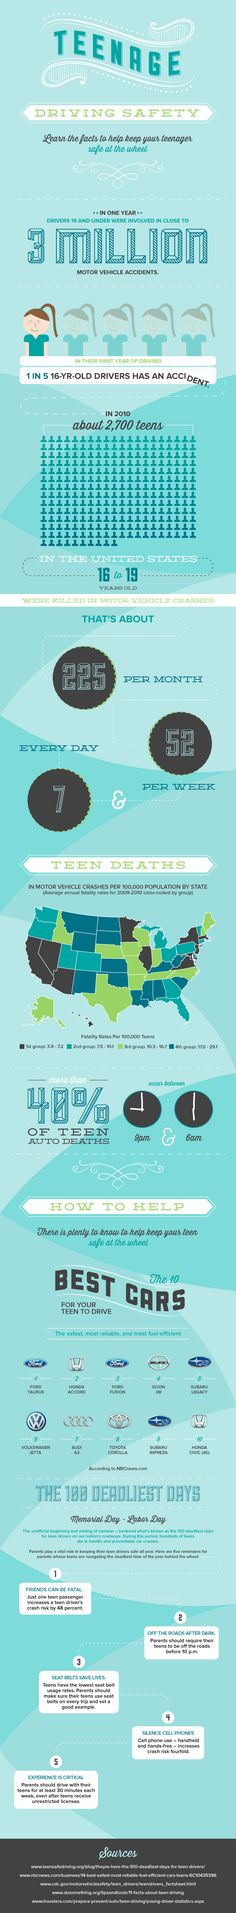 #Teenage #Driving #Safety #infographic